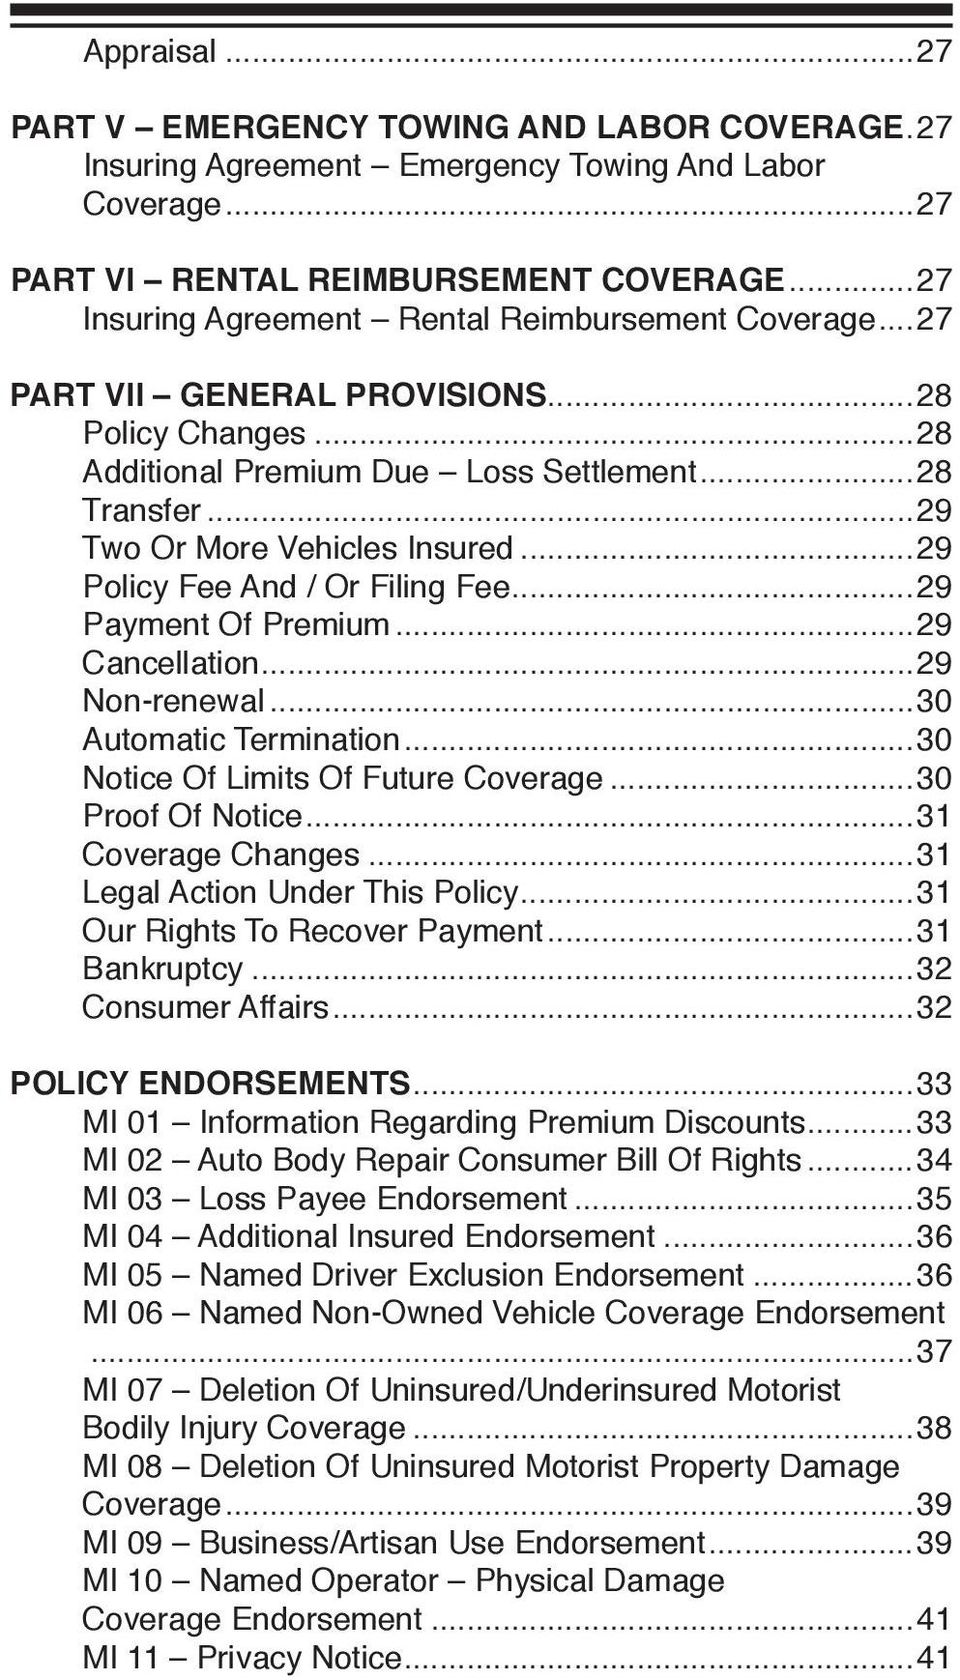 ..29 Policy Fee And / Or Filing Fee...29 Payment Of Premium...29 Cancellation...29 Non-renewal...30 Automatic Termination...30 Notice Of Limits Of Future Coverage...30 Proof Of Notice.